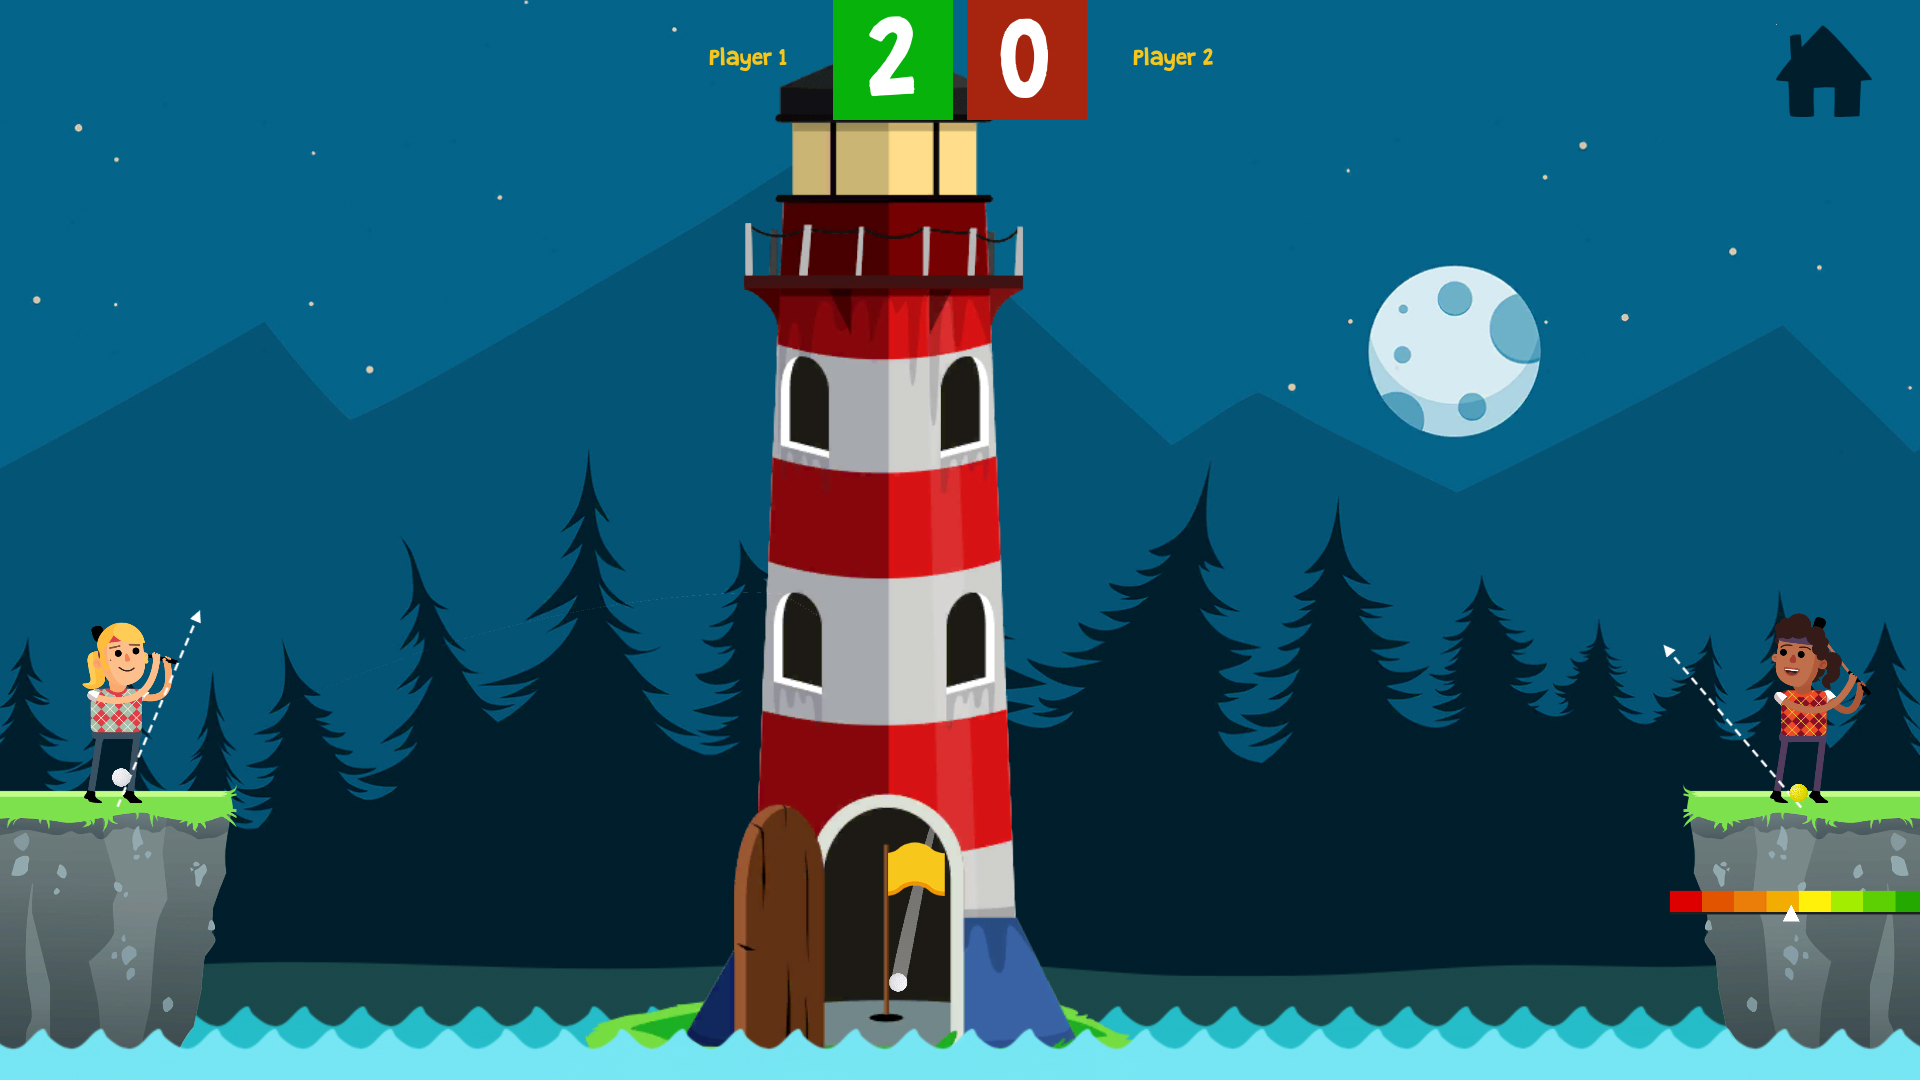 of2oWe6zf97F4QuEiWi9z9 - The best free Android games 2018